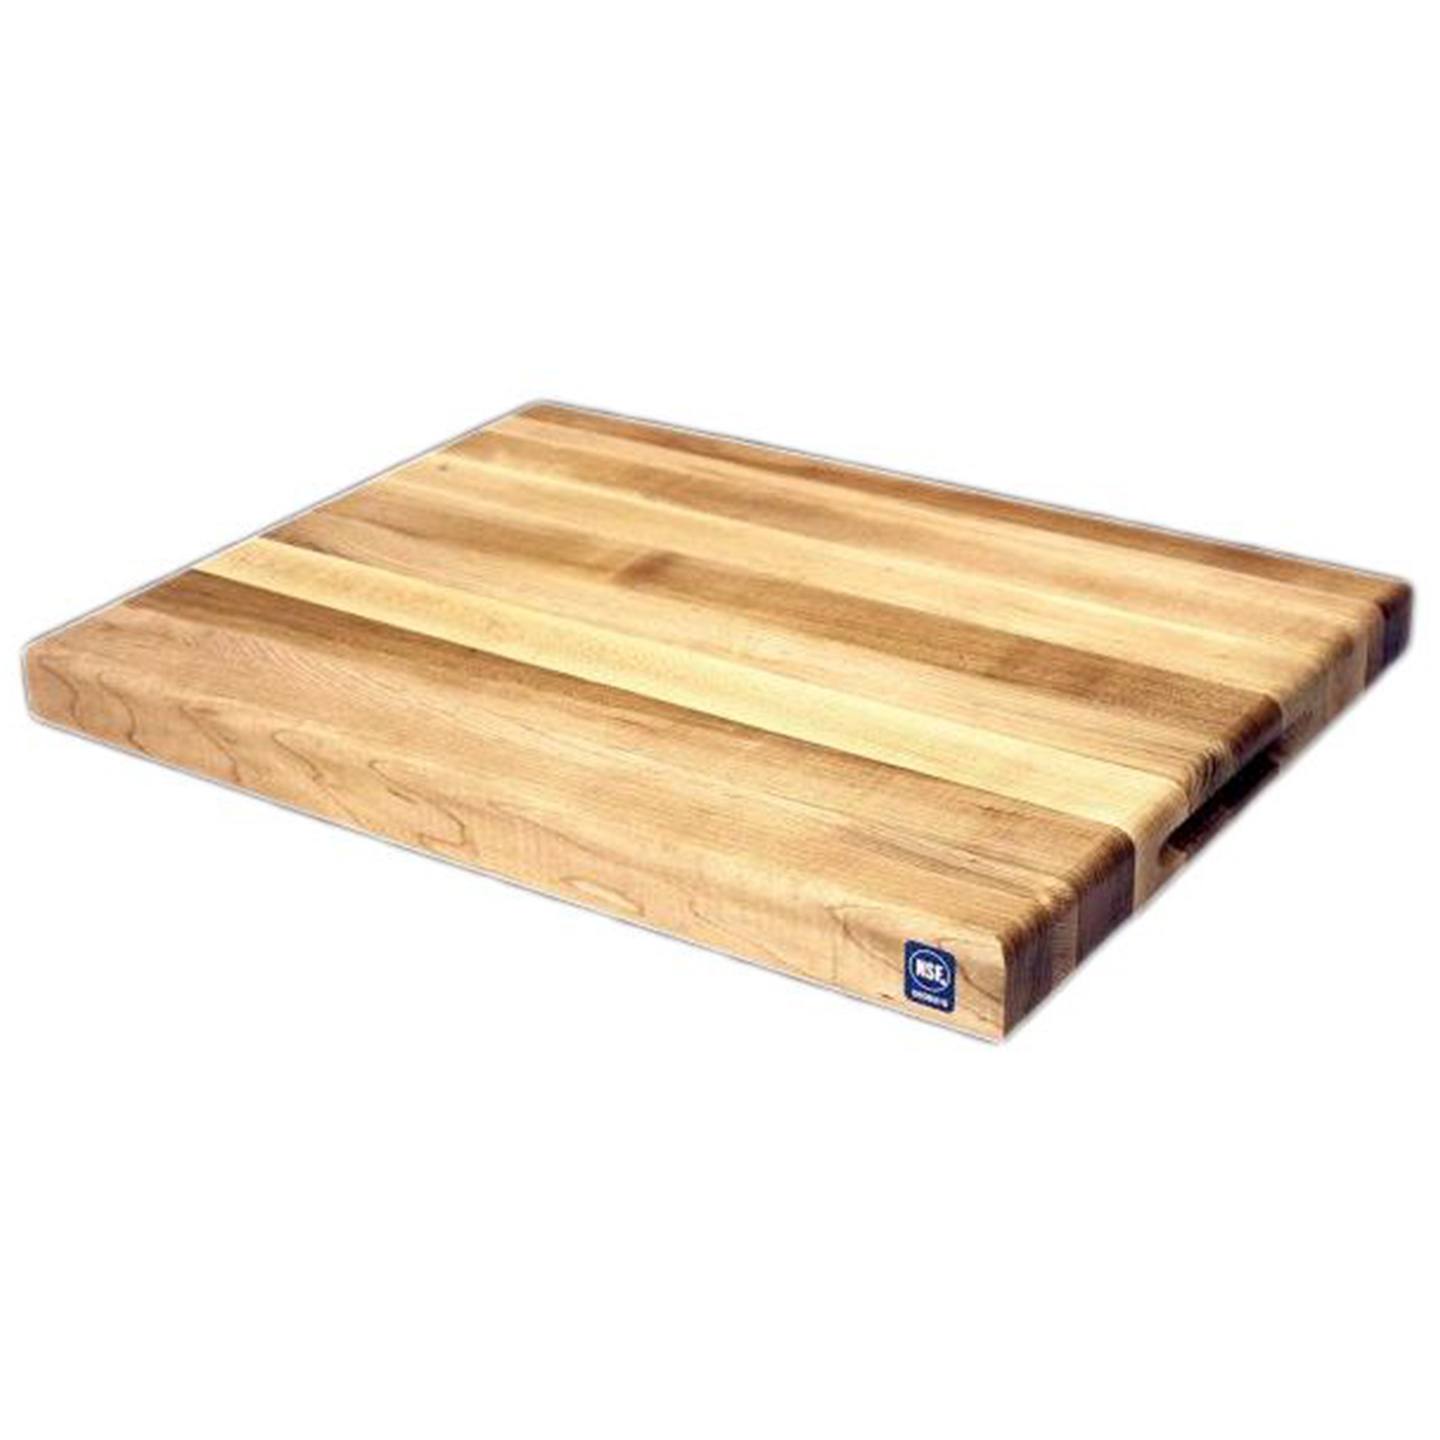 Edge Grain Wood Cutting Board